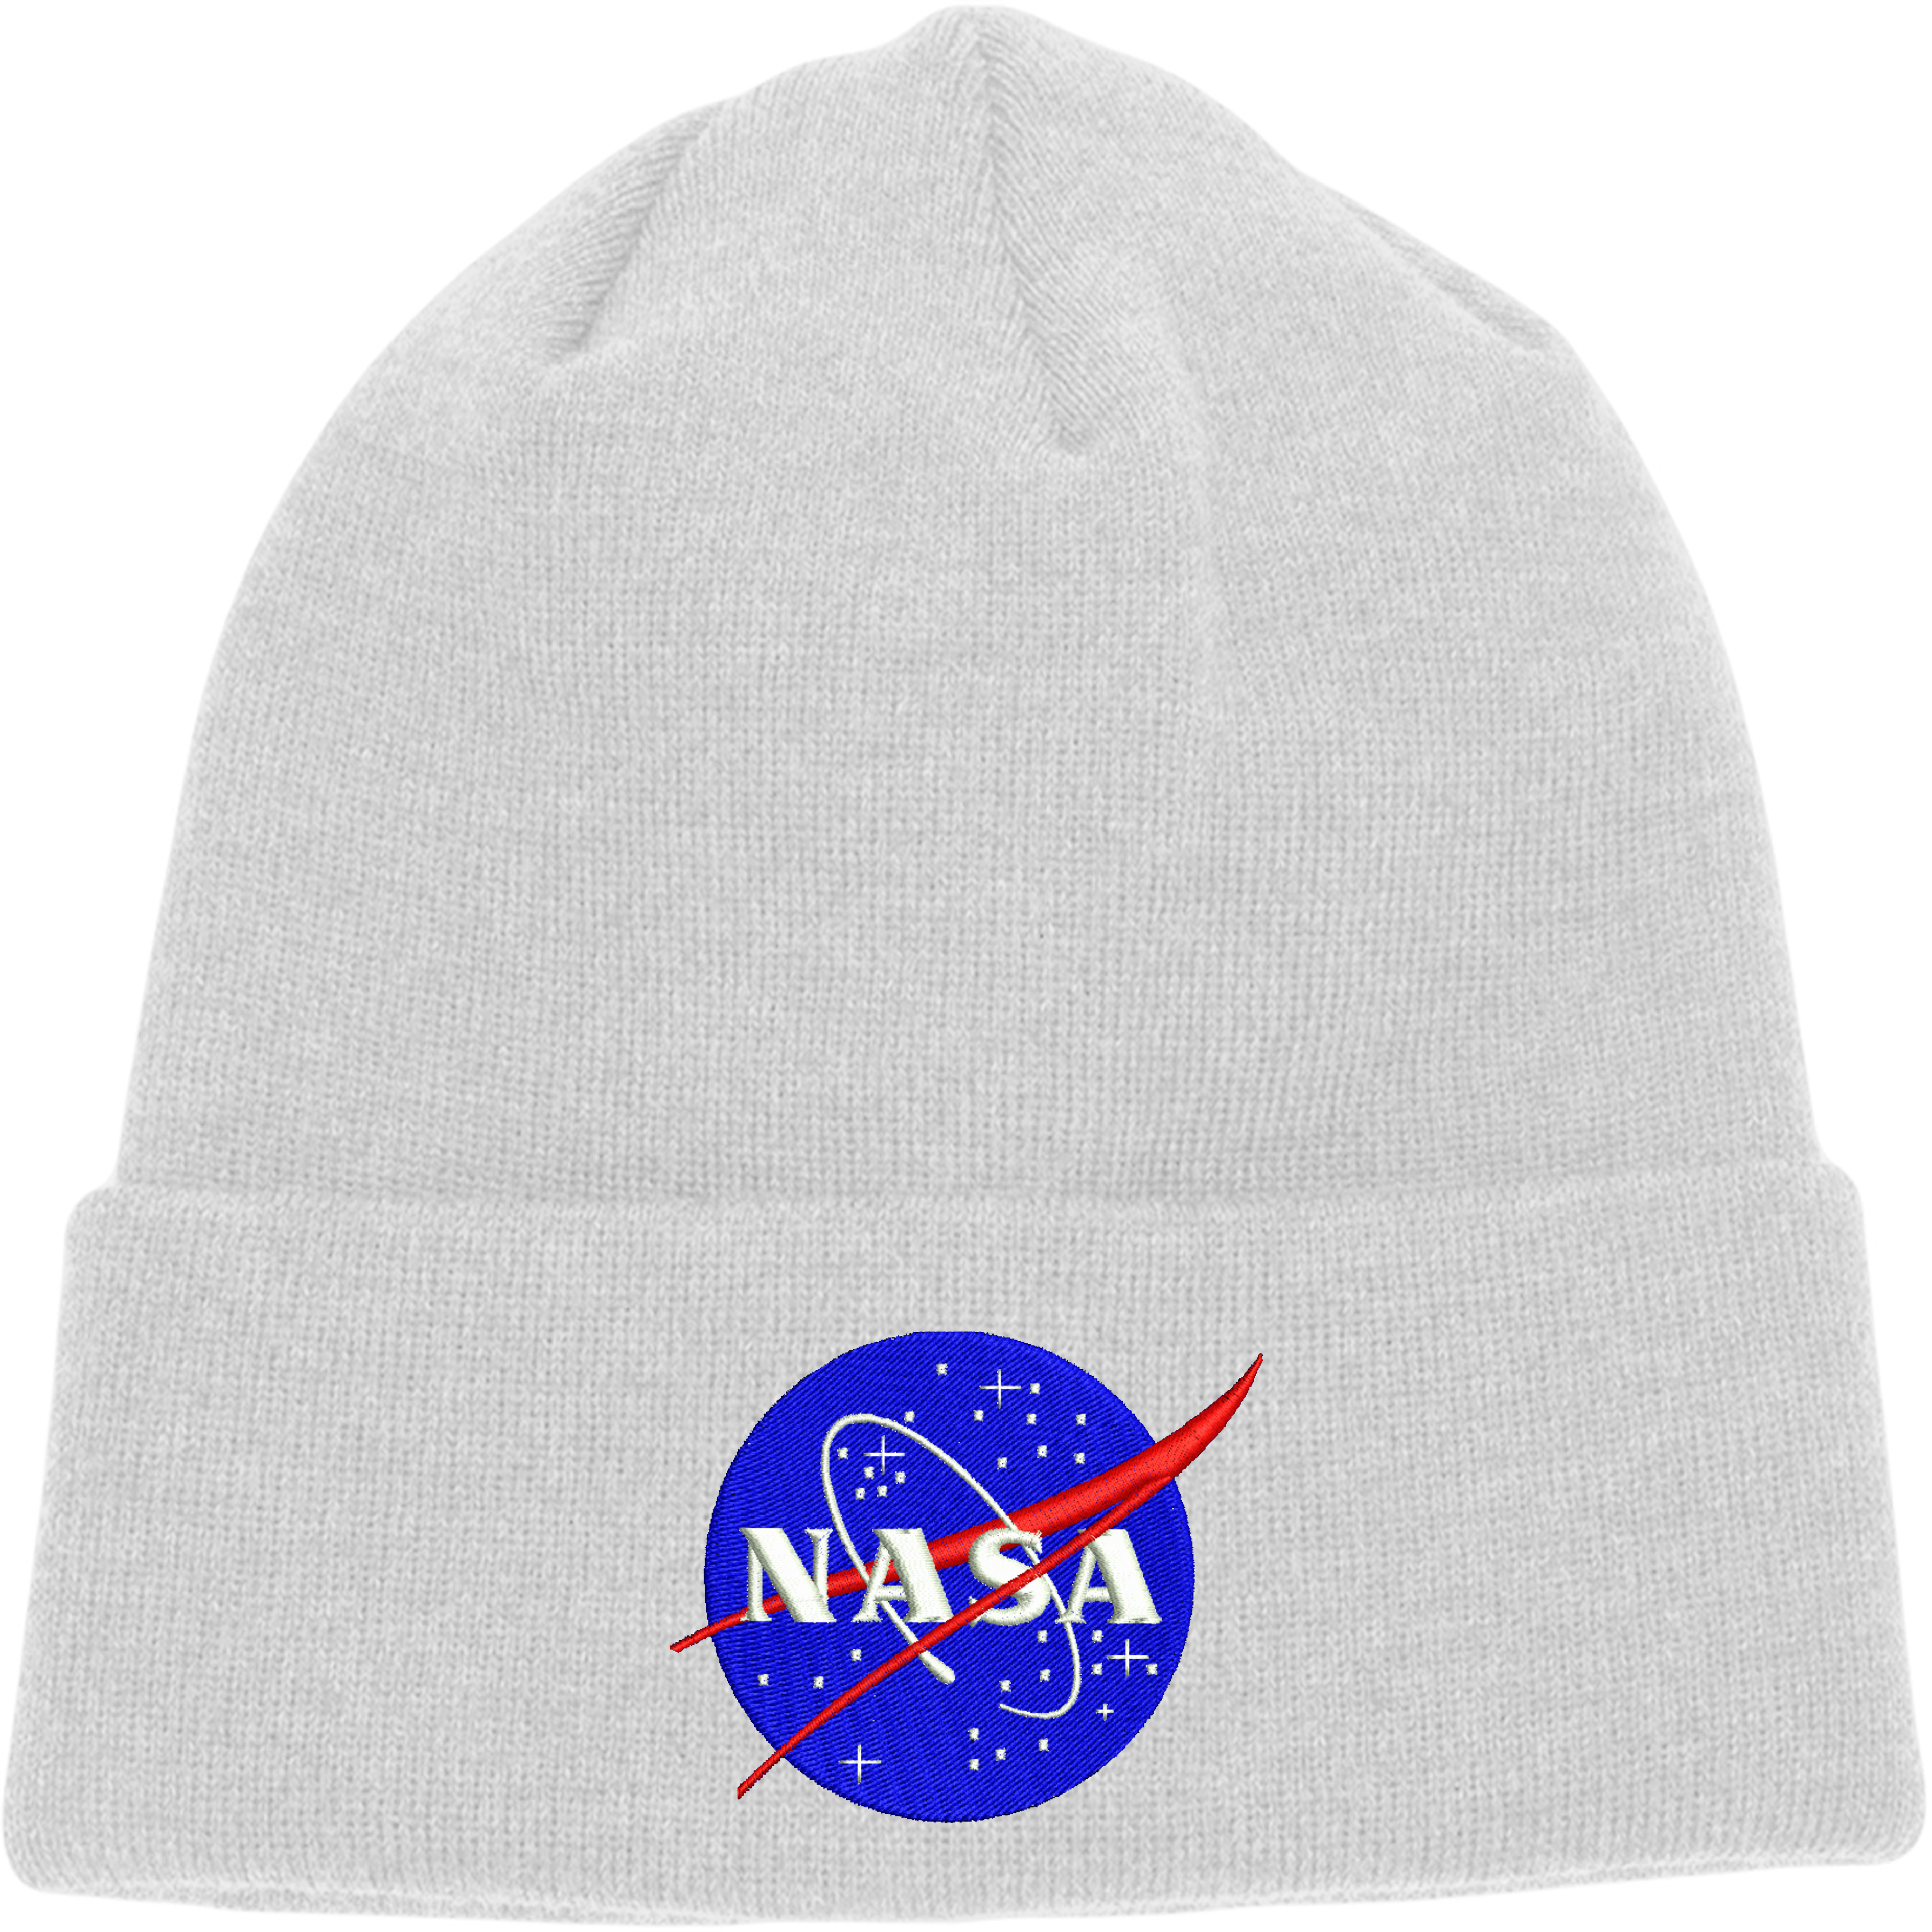 Image is loading Nasa-Beanie-International-Space-Station-Hat -Embroidered-Design 71d710020ac